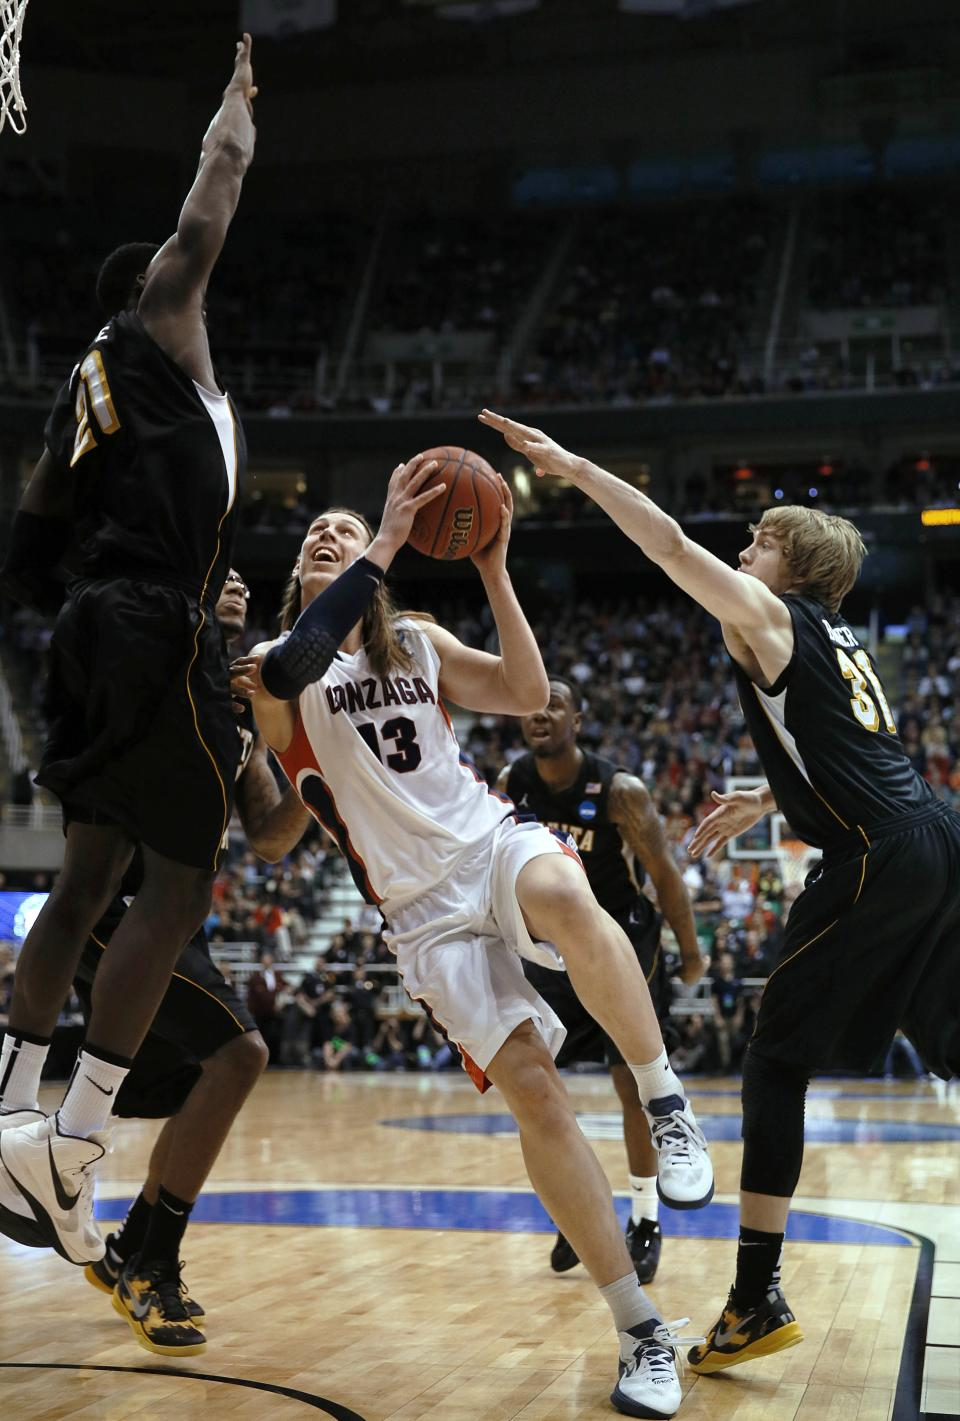 Gonzaga's  Kelly Olynyk, center, drives between Wichita State's  Ehimen Orukep, left and Ron Baker during the first half during a third-round game in the NCAA men's college basketball tournament in Salt Lake City on Saturday, March 23, 2013. (AP Photo/George Frey)